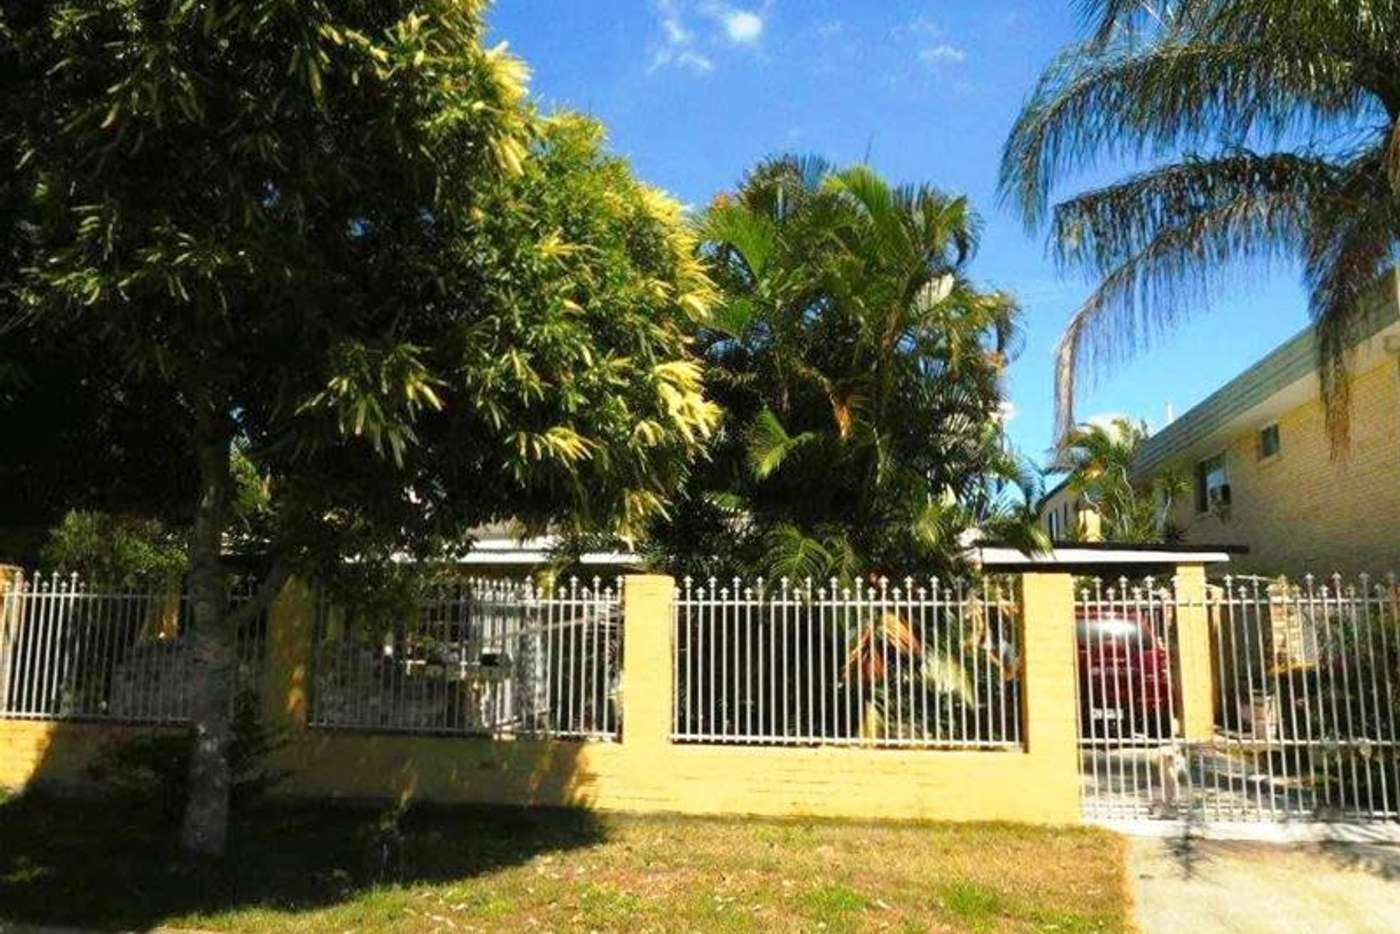 Main view of Homely house listing, 40 Sunrise Boulevard, Surfers Paradise QLD 4217